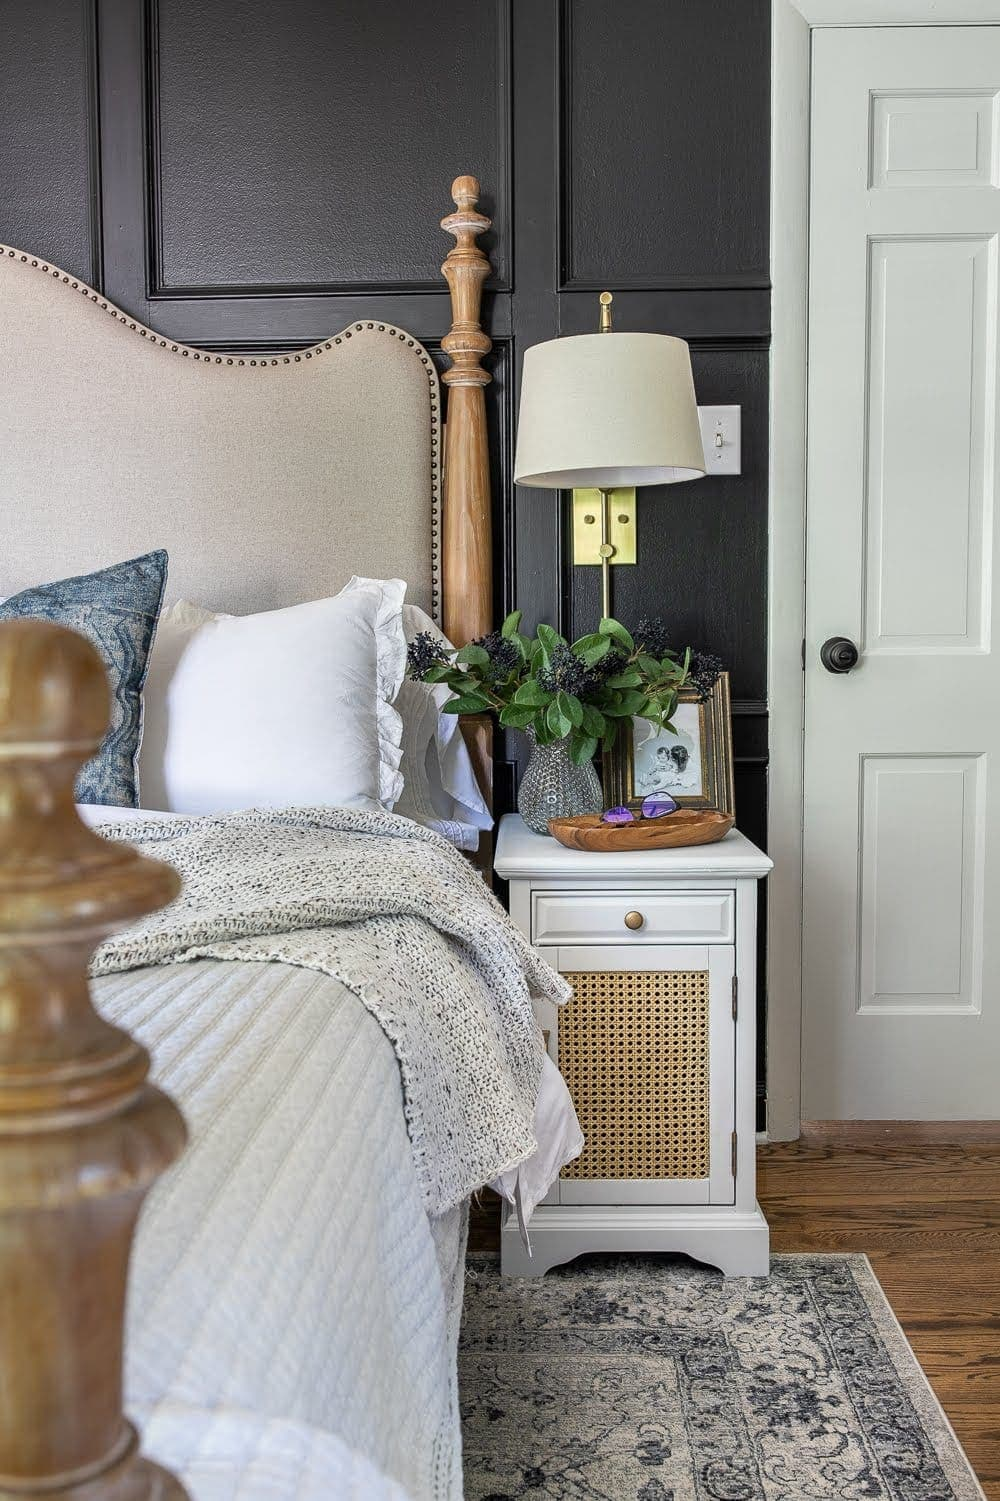 DIY Cane Nightstand Makeover | How to turn a basic glass cabinet nightstand into a designer-worthy cane style that works for both modern and traditional styles.